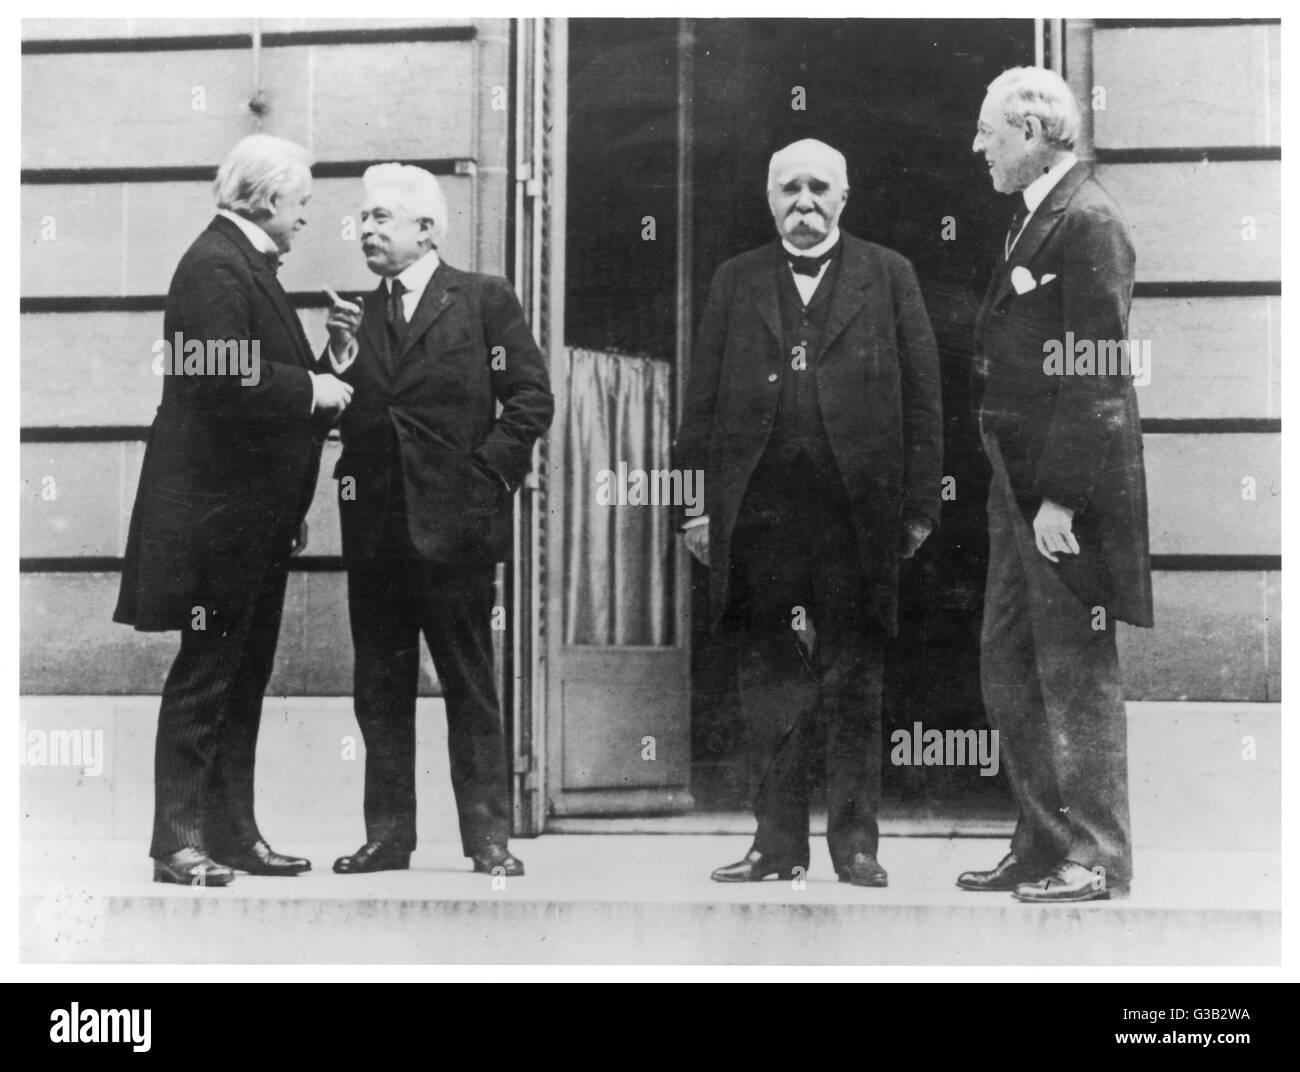 """The Big Four"" at the peace  talks: (l-r) Lloyd George,  Vittorio Orlando, Georges  Clemenceau - Stock Image"